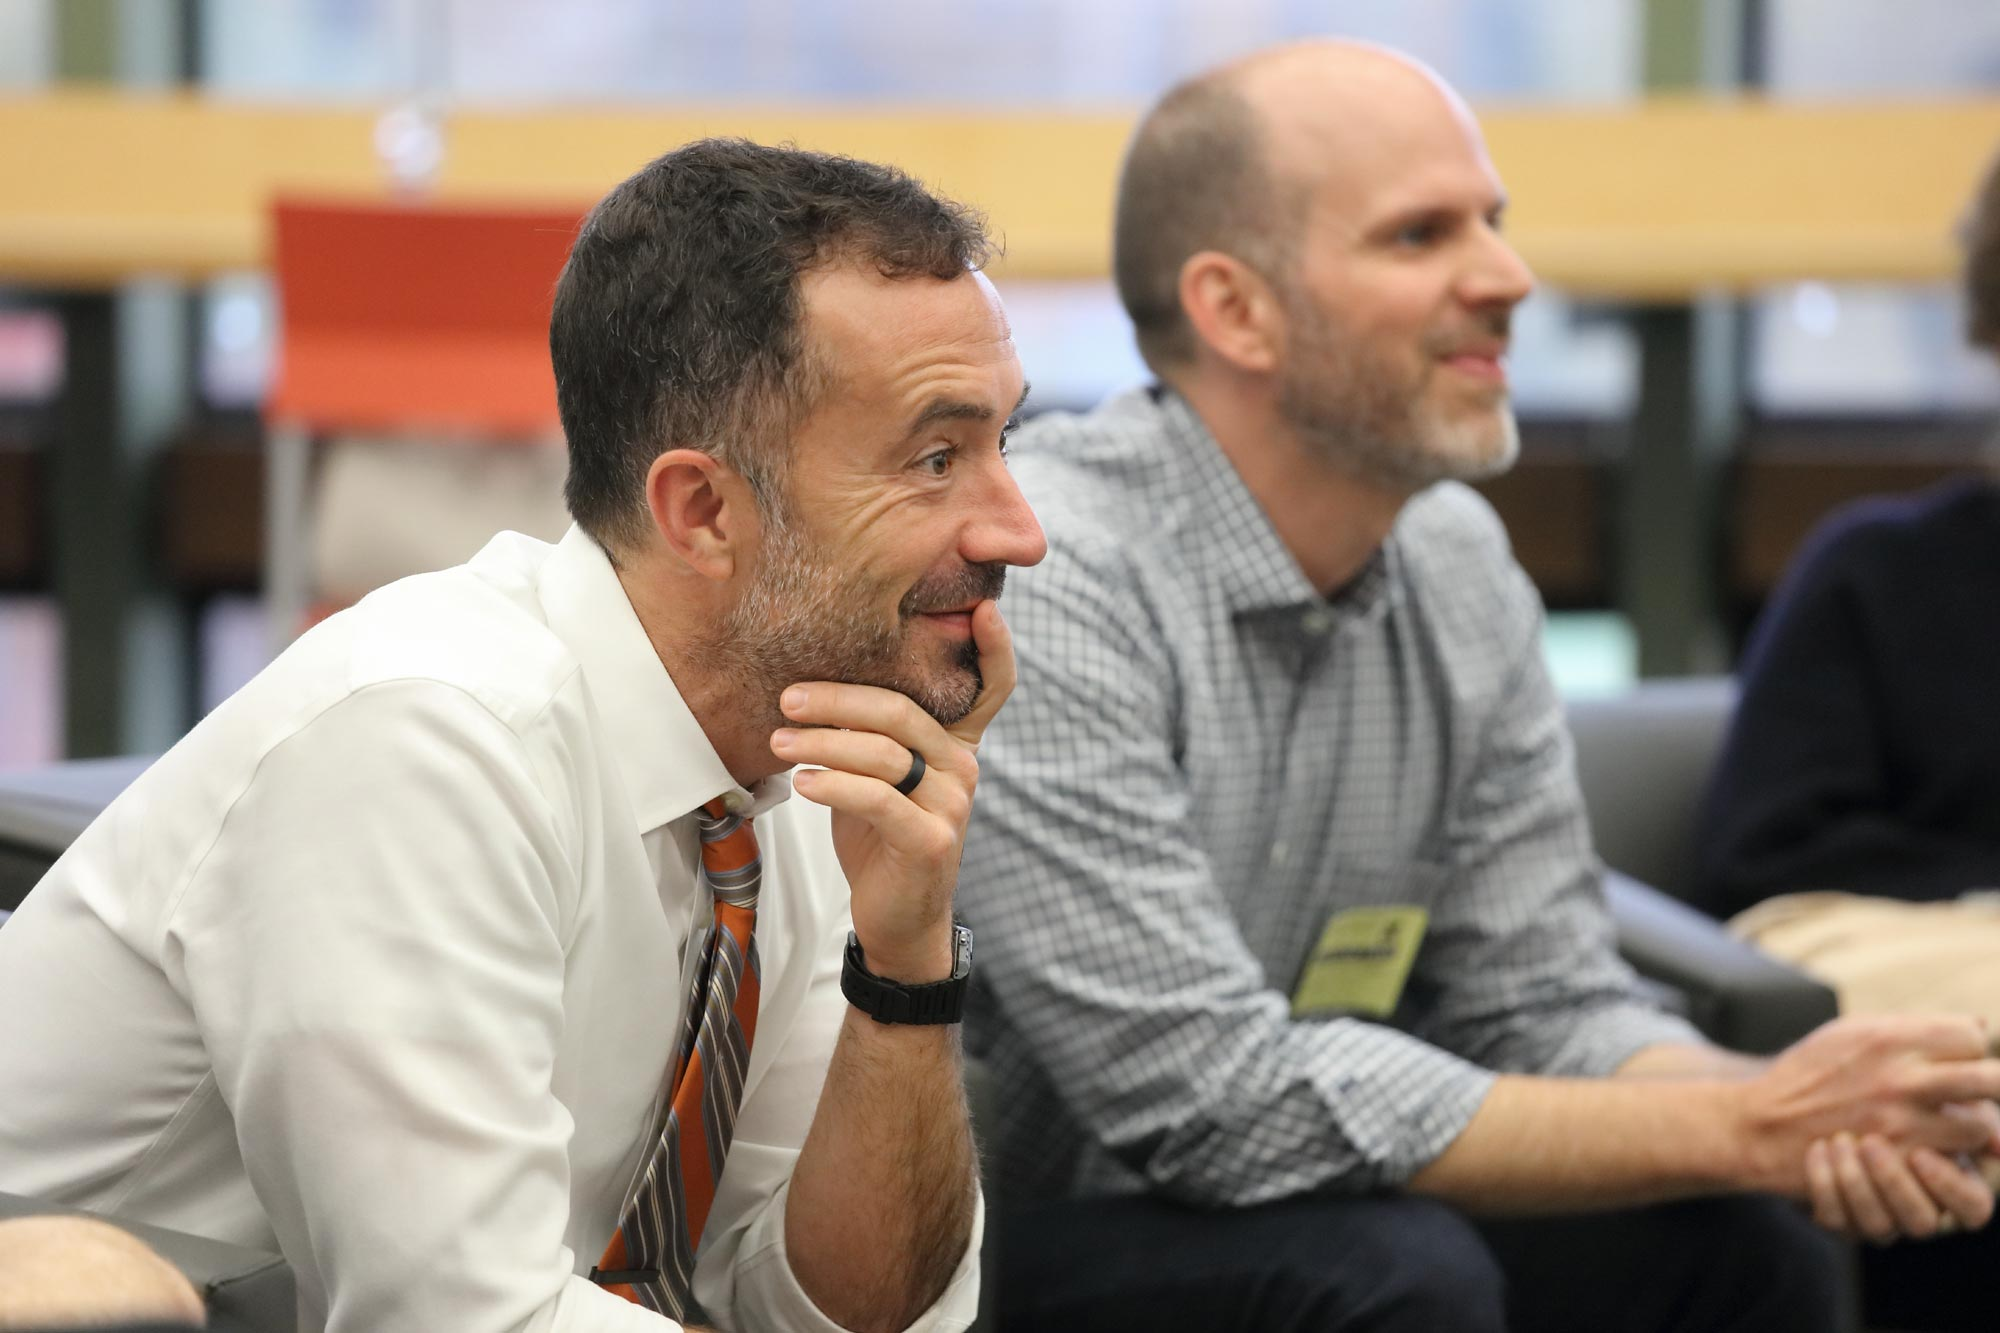 CHS engineering teacher Matthew Shields and UVA professor Jonathan L. Goodall both graduated from UVA Engineering in 2001. Now they are bringing their students together to demonstrate the power of community in tackling challenging problems.